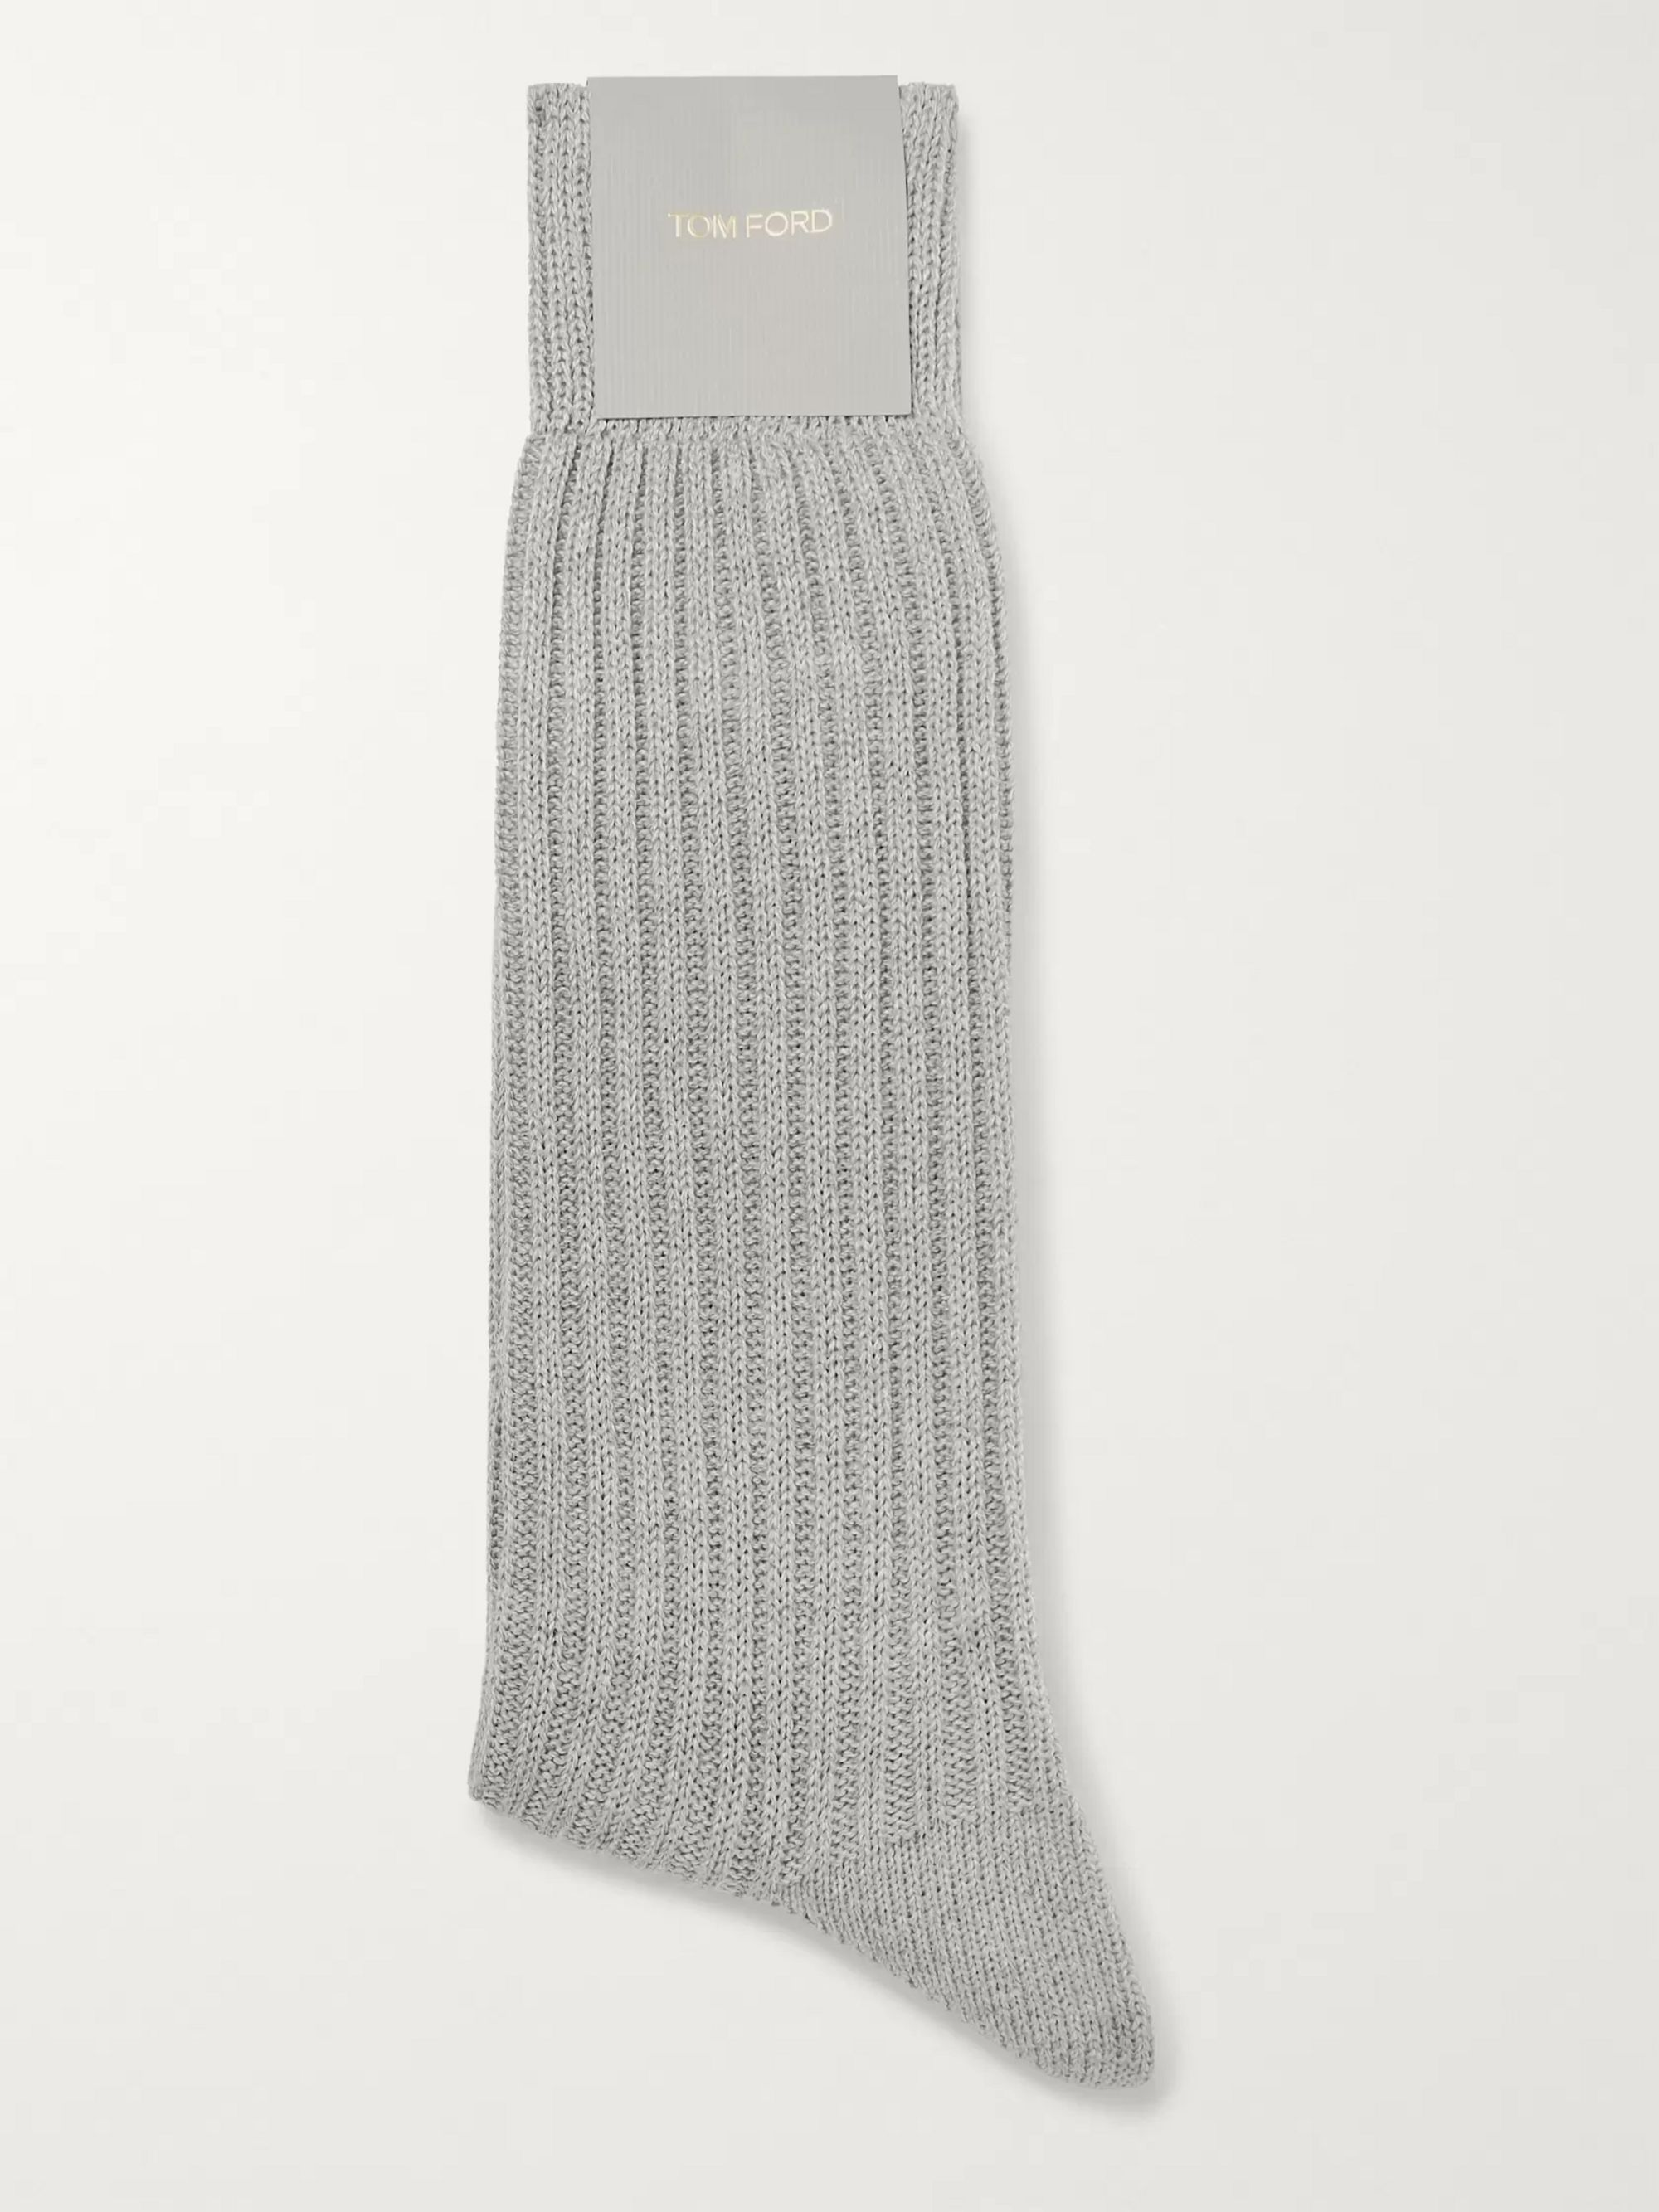 TOM FORD Ribbed Mélange Cotton Socks